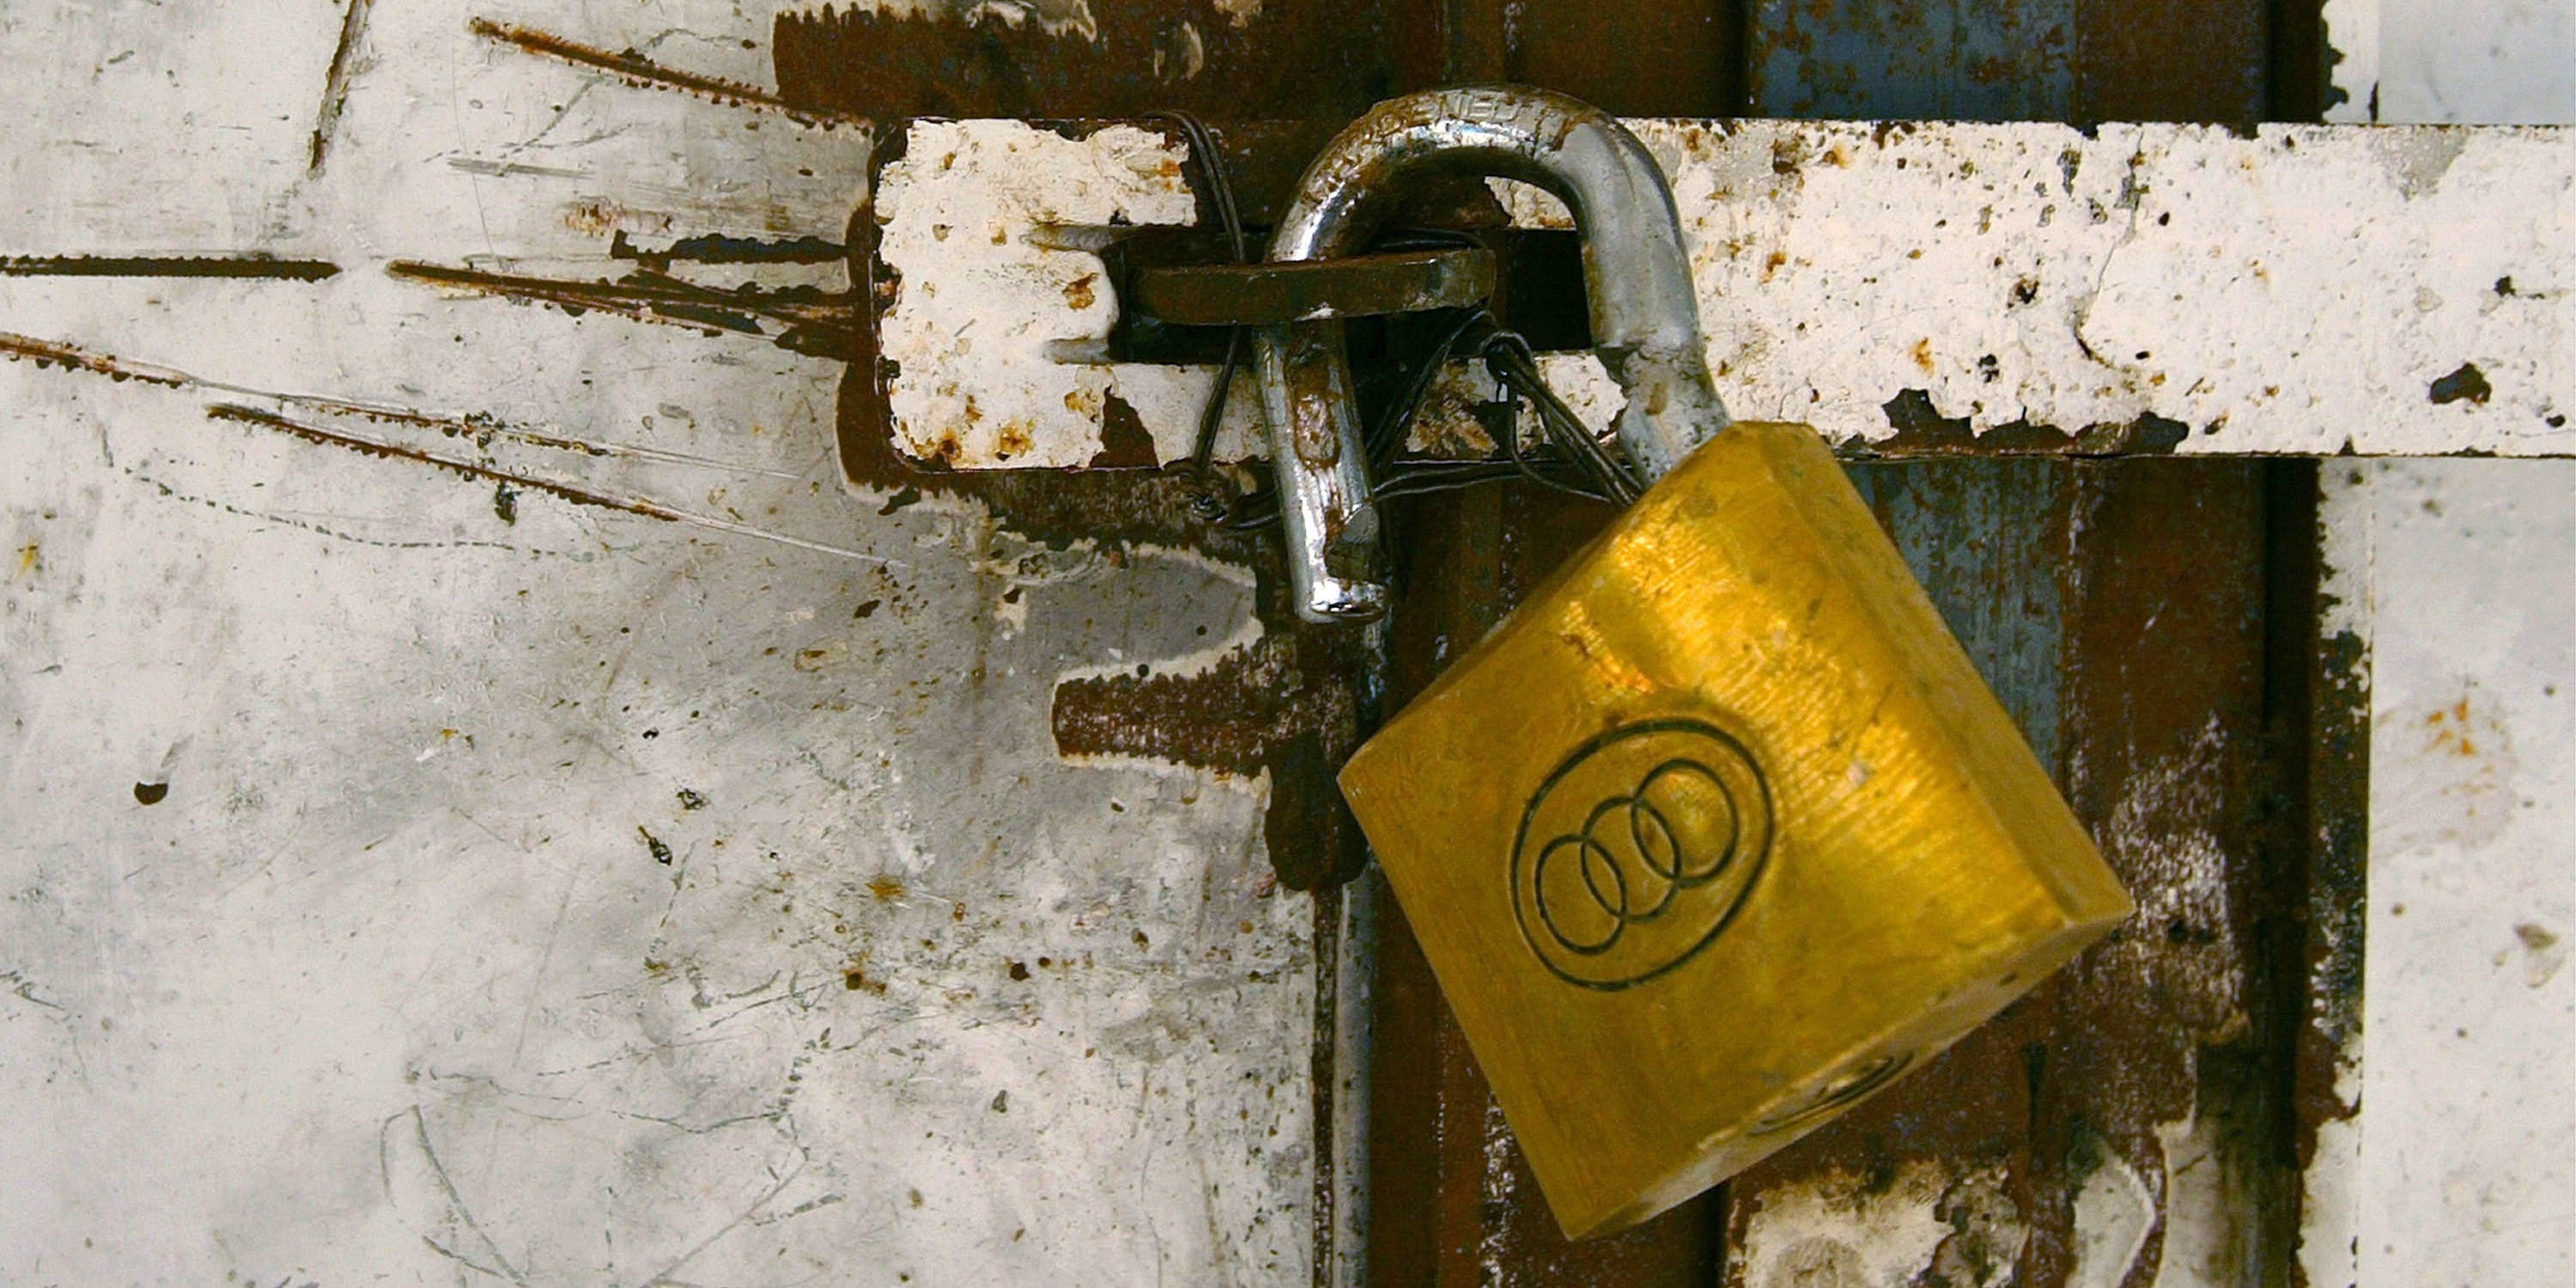 NABLUS, WEST BANK - FEBRUARY 20:  A broken lock holds a metal door shut after Israeli soldiers conducted house-to-house searches in the area for wanted militants February 20, 2003 in the Casbah of the West Bank town of Nablus. The Israeli Defense Force (IDF) has arrested approximately 40 Palestinians over the last 24 hours in operations in the ancient market area.  (Photo by David Silverman/Getty Images)